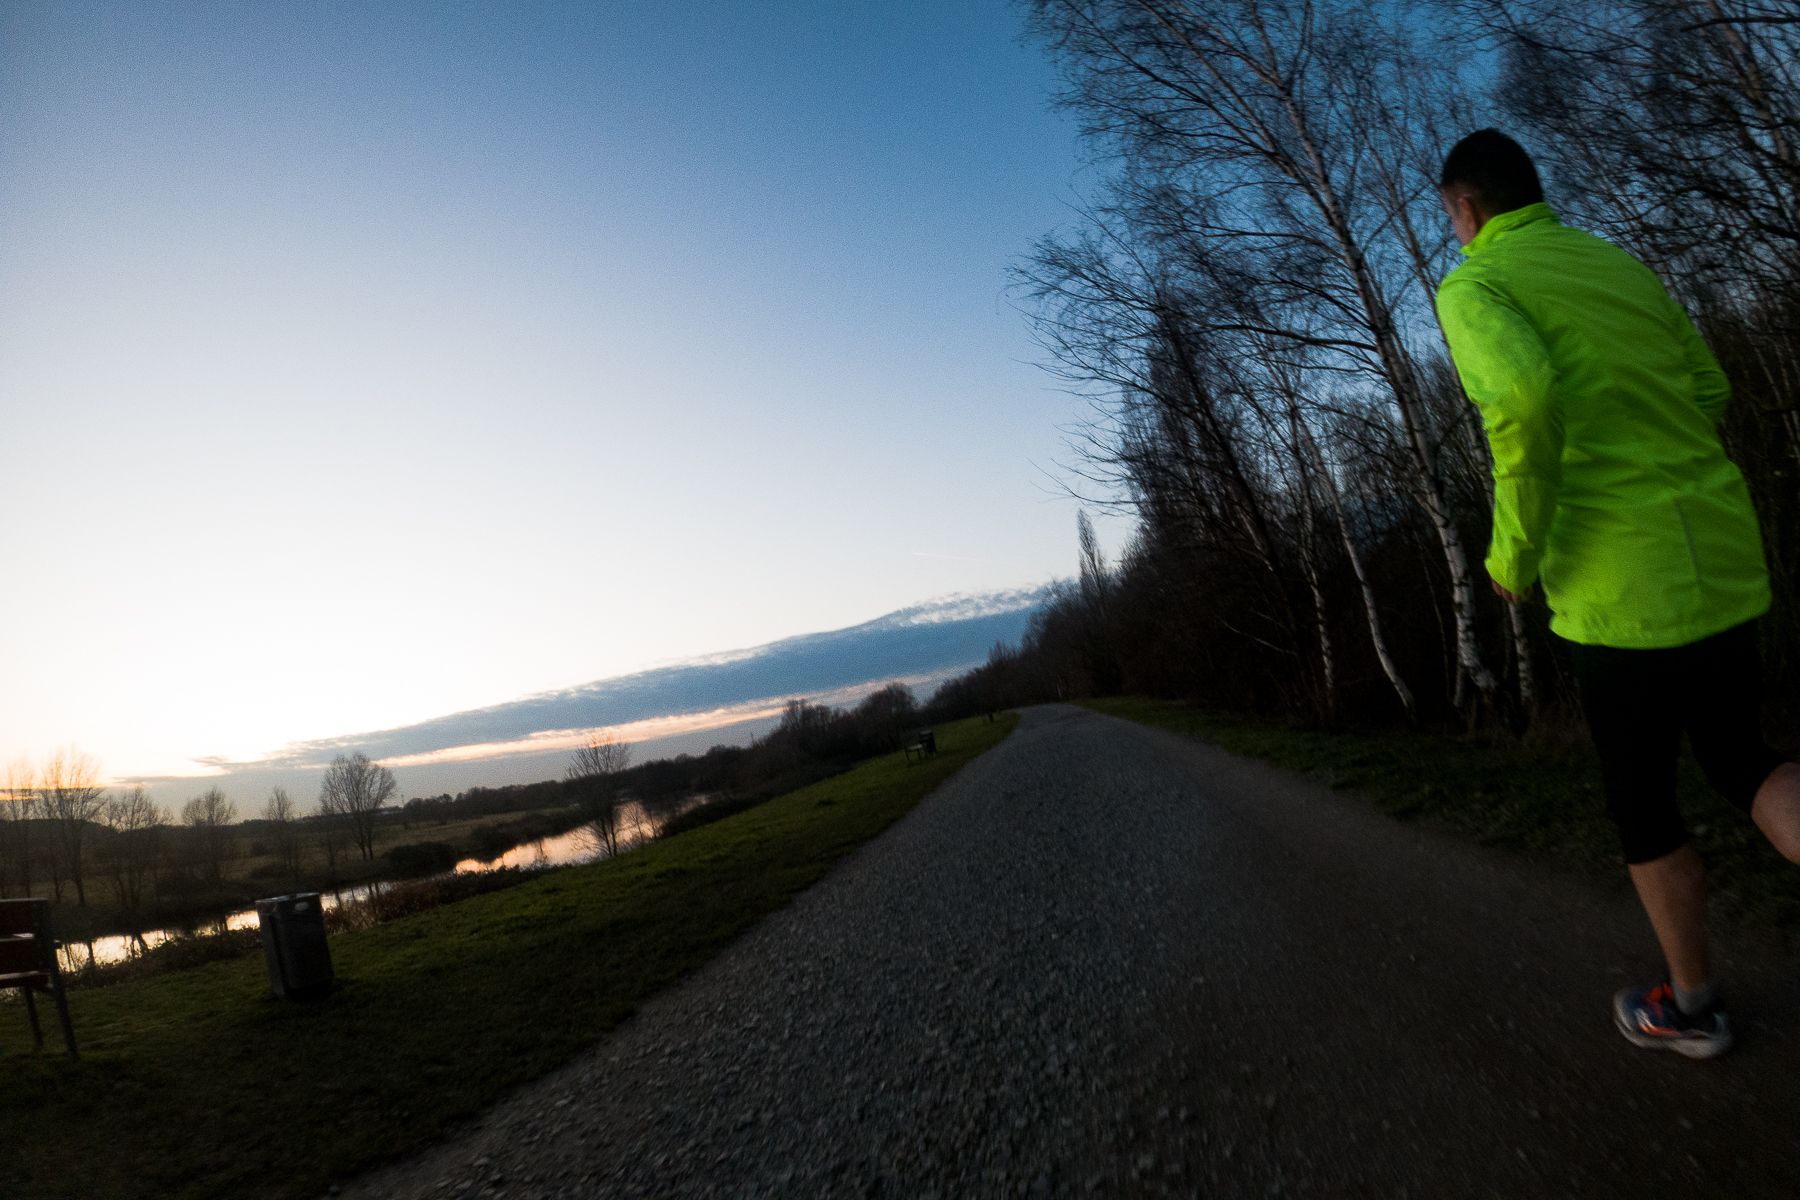 Another solid running location are the Ruhr river wetlands farther north from Mülheim's city center, where the borders between Mülheim and Oberhausen meet. Here, I follow a  path along the river and approach a fellow runner. Oberhausen, February, 19, 2020.